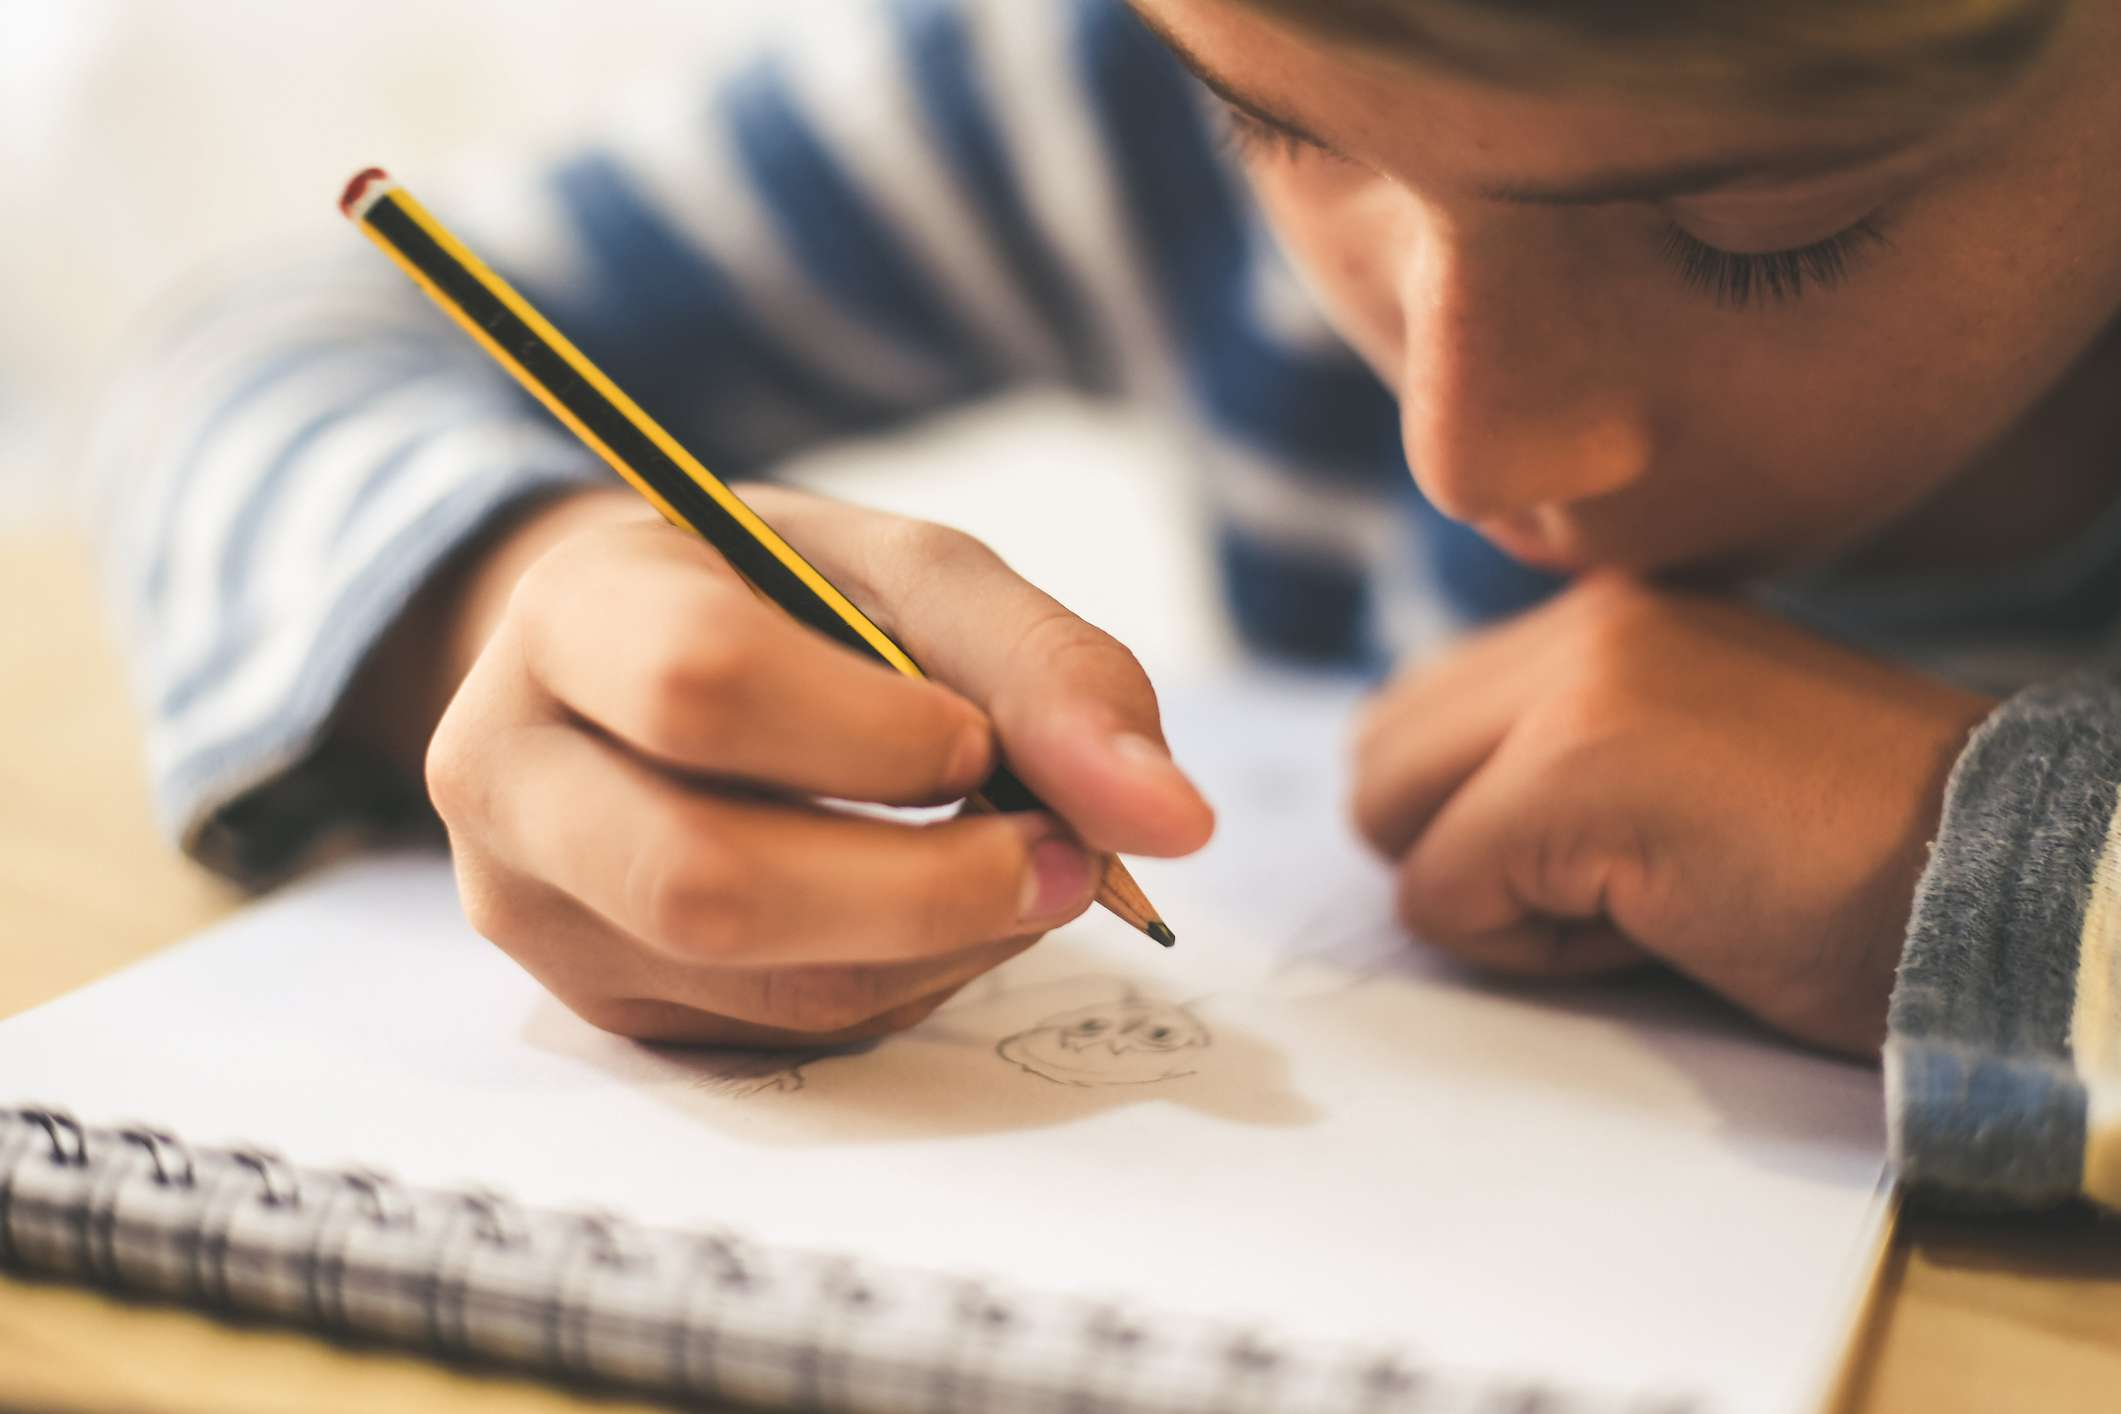 Boy drawing in a sketch book